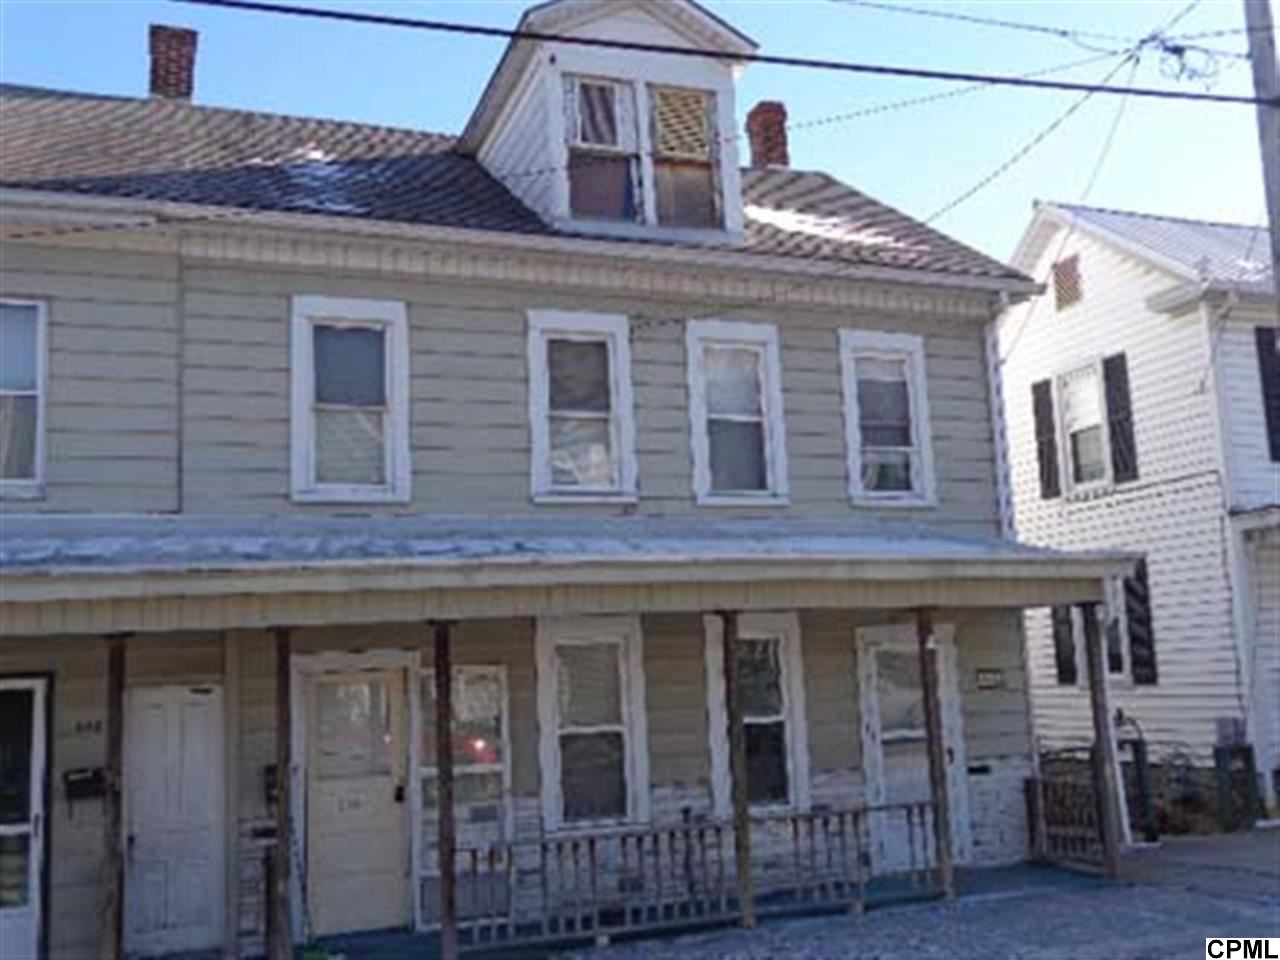 250-252 W 5th St, Lewistown, PA 17044